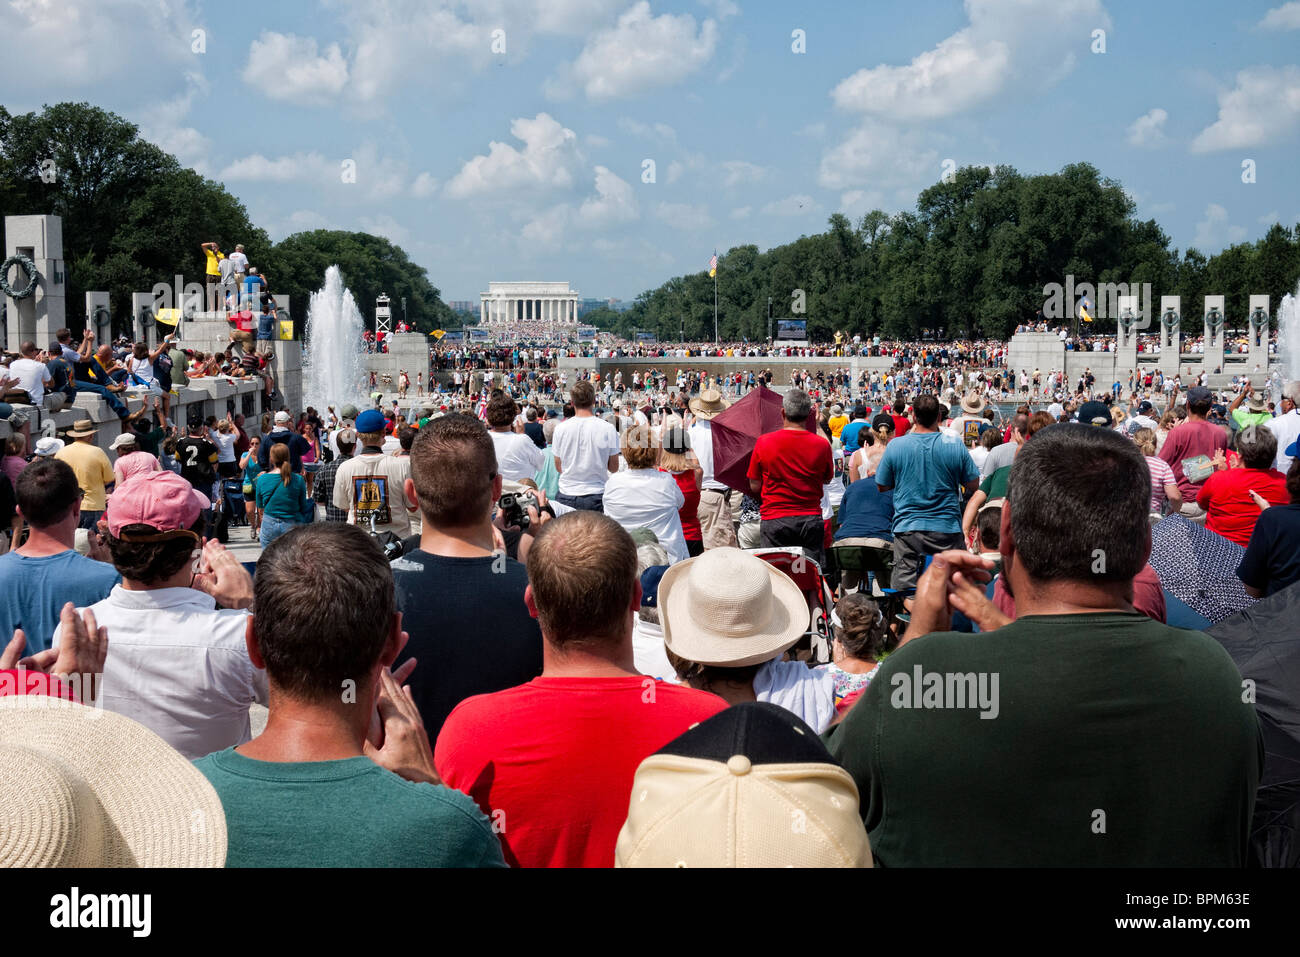 "WASHINGTON DC, USA - Conservative television commentator Glenn Beck's ""Restore Honor"" conservative rally at the Stock Photo"